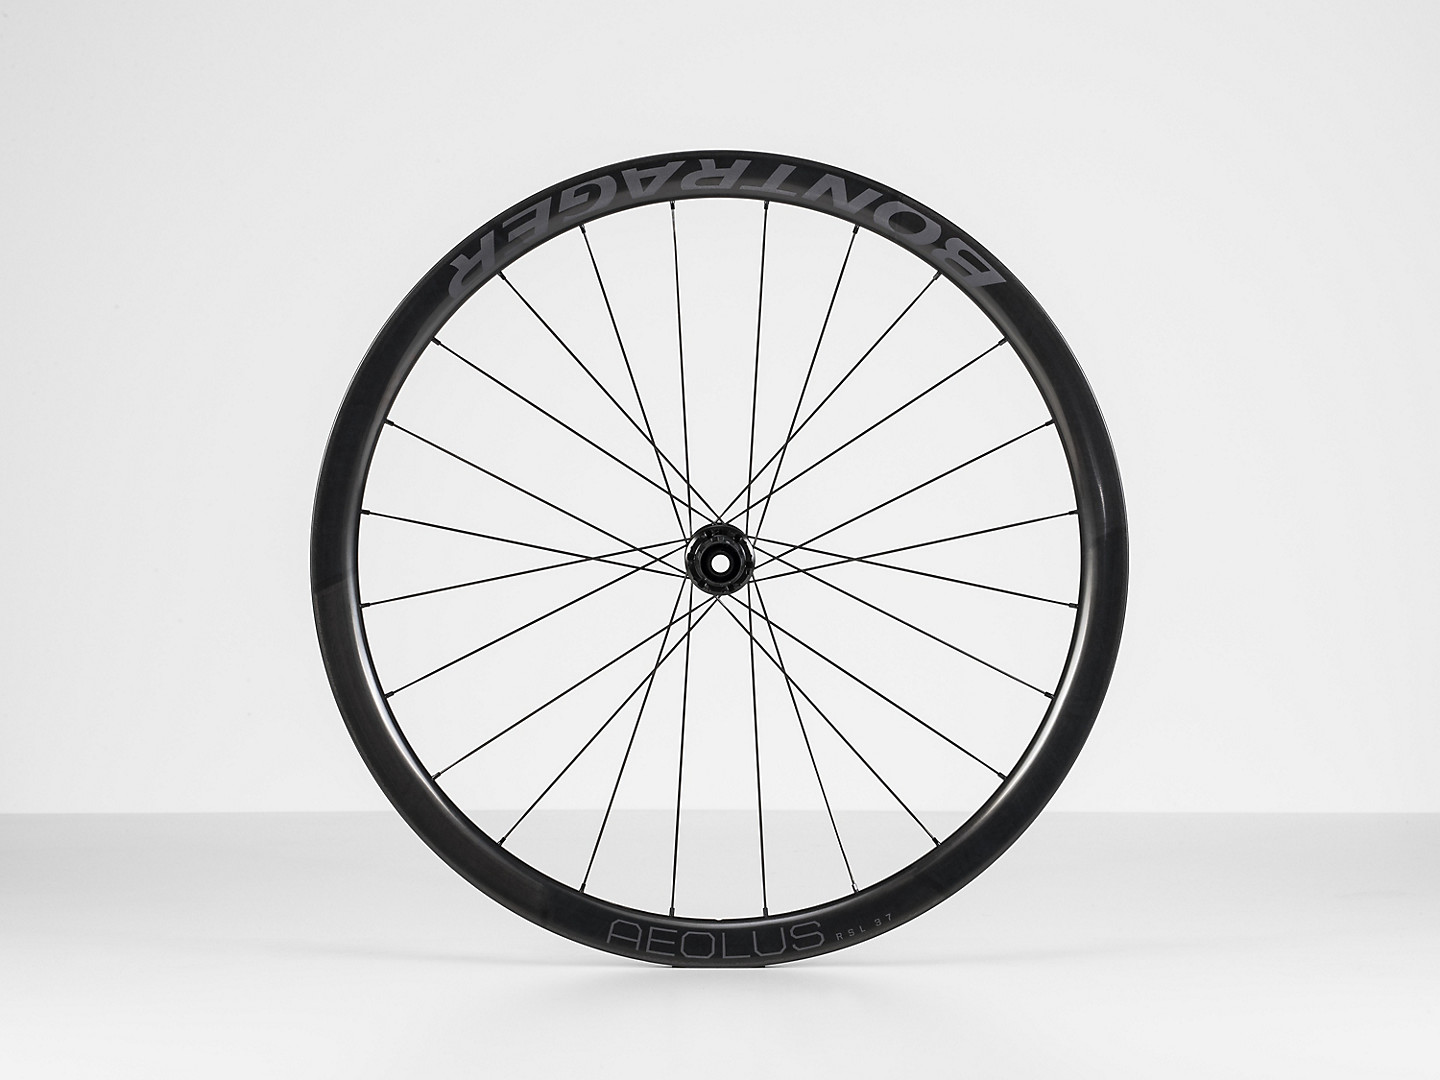 【ホイール】Aeolus RSL 37 TLR Disc Road Wheel 入荷!!